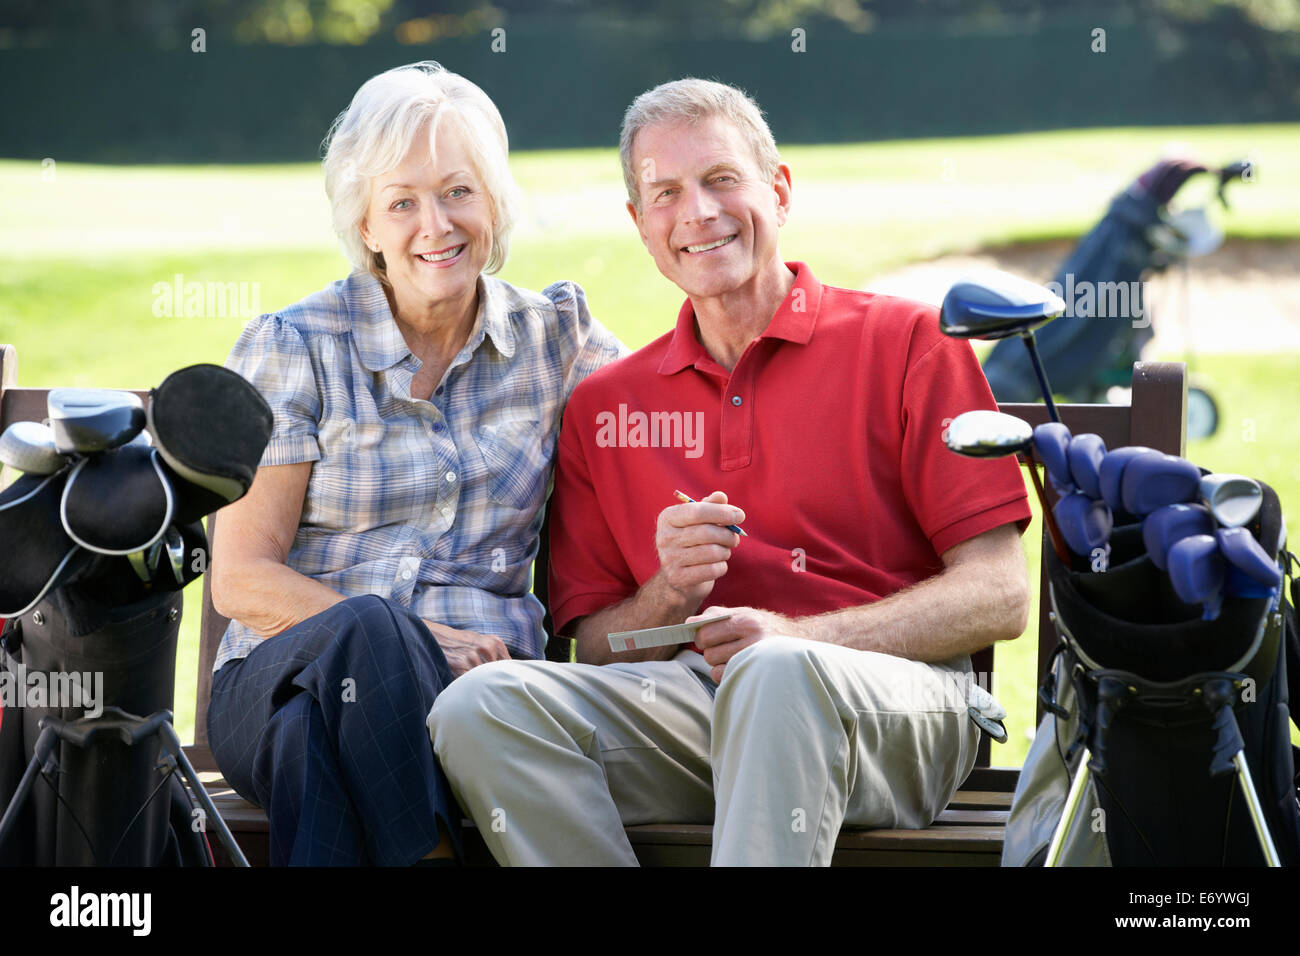 Senior couple on golf course - Stock Image